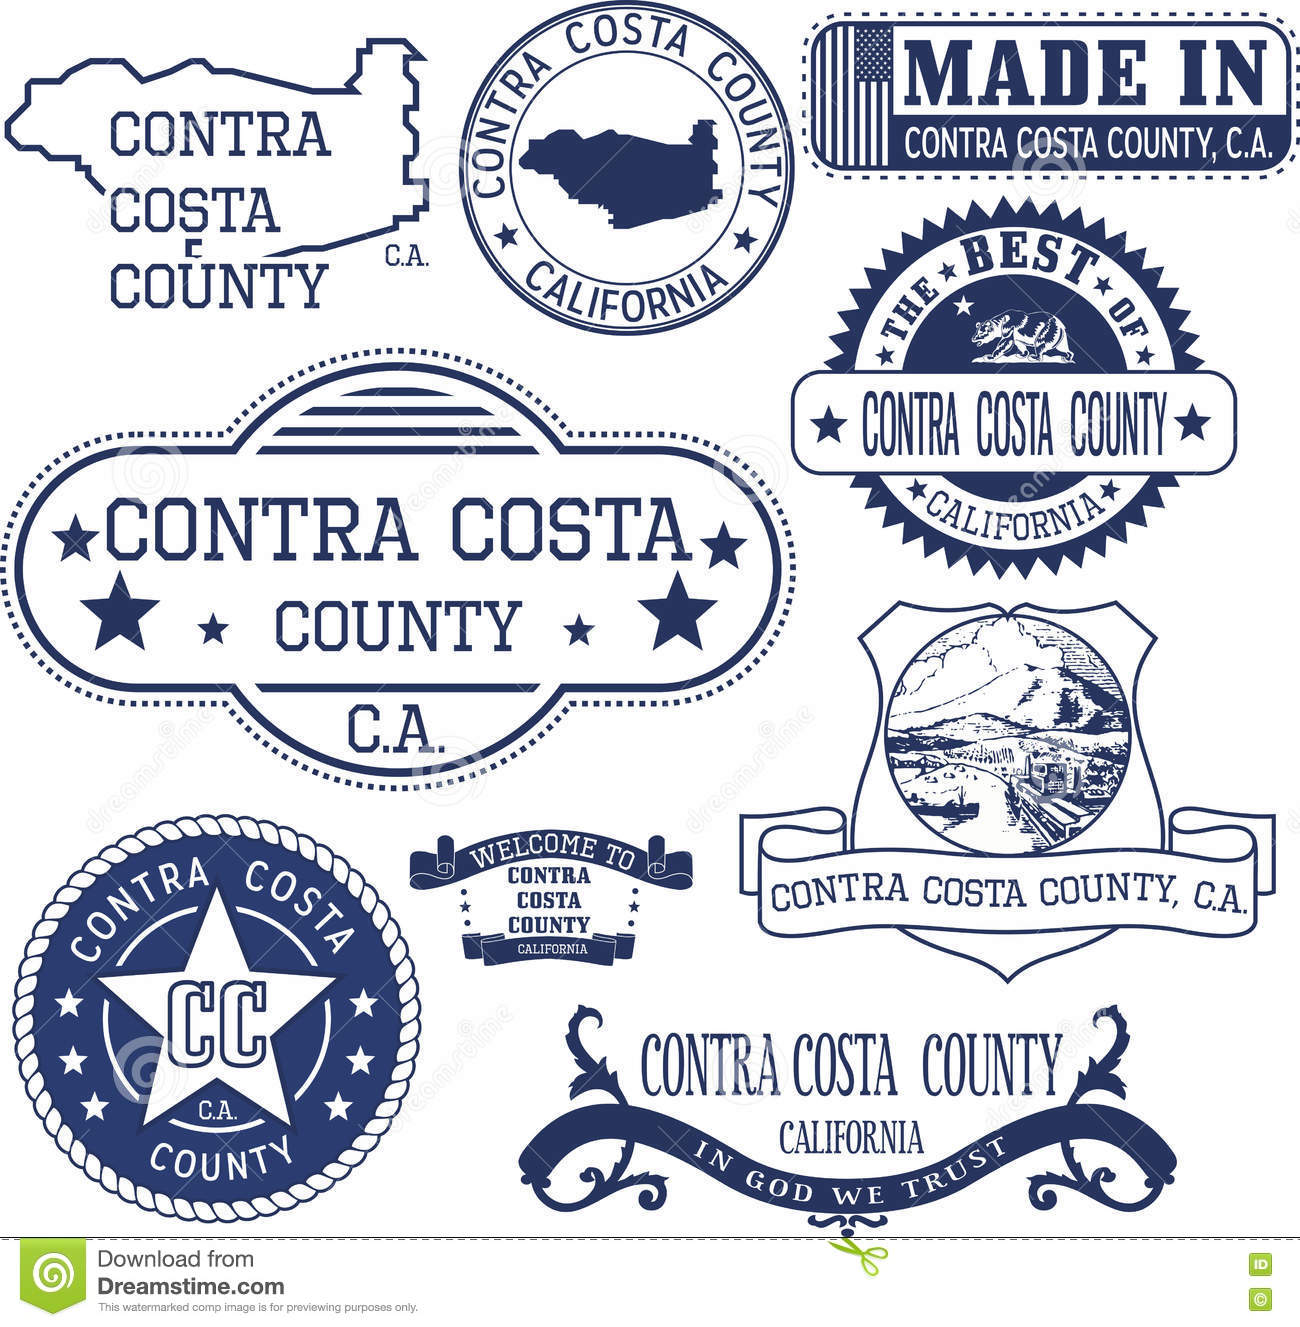 Image of: Contra Costa County Ca Set Of Stamps And Signs Stock Vector Illustration Of California Mark 79659514